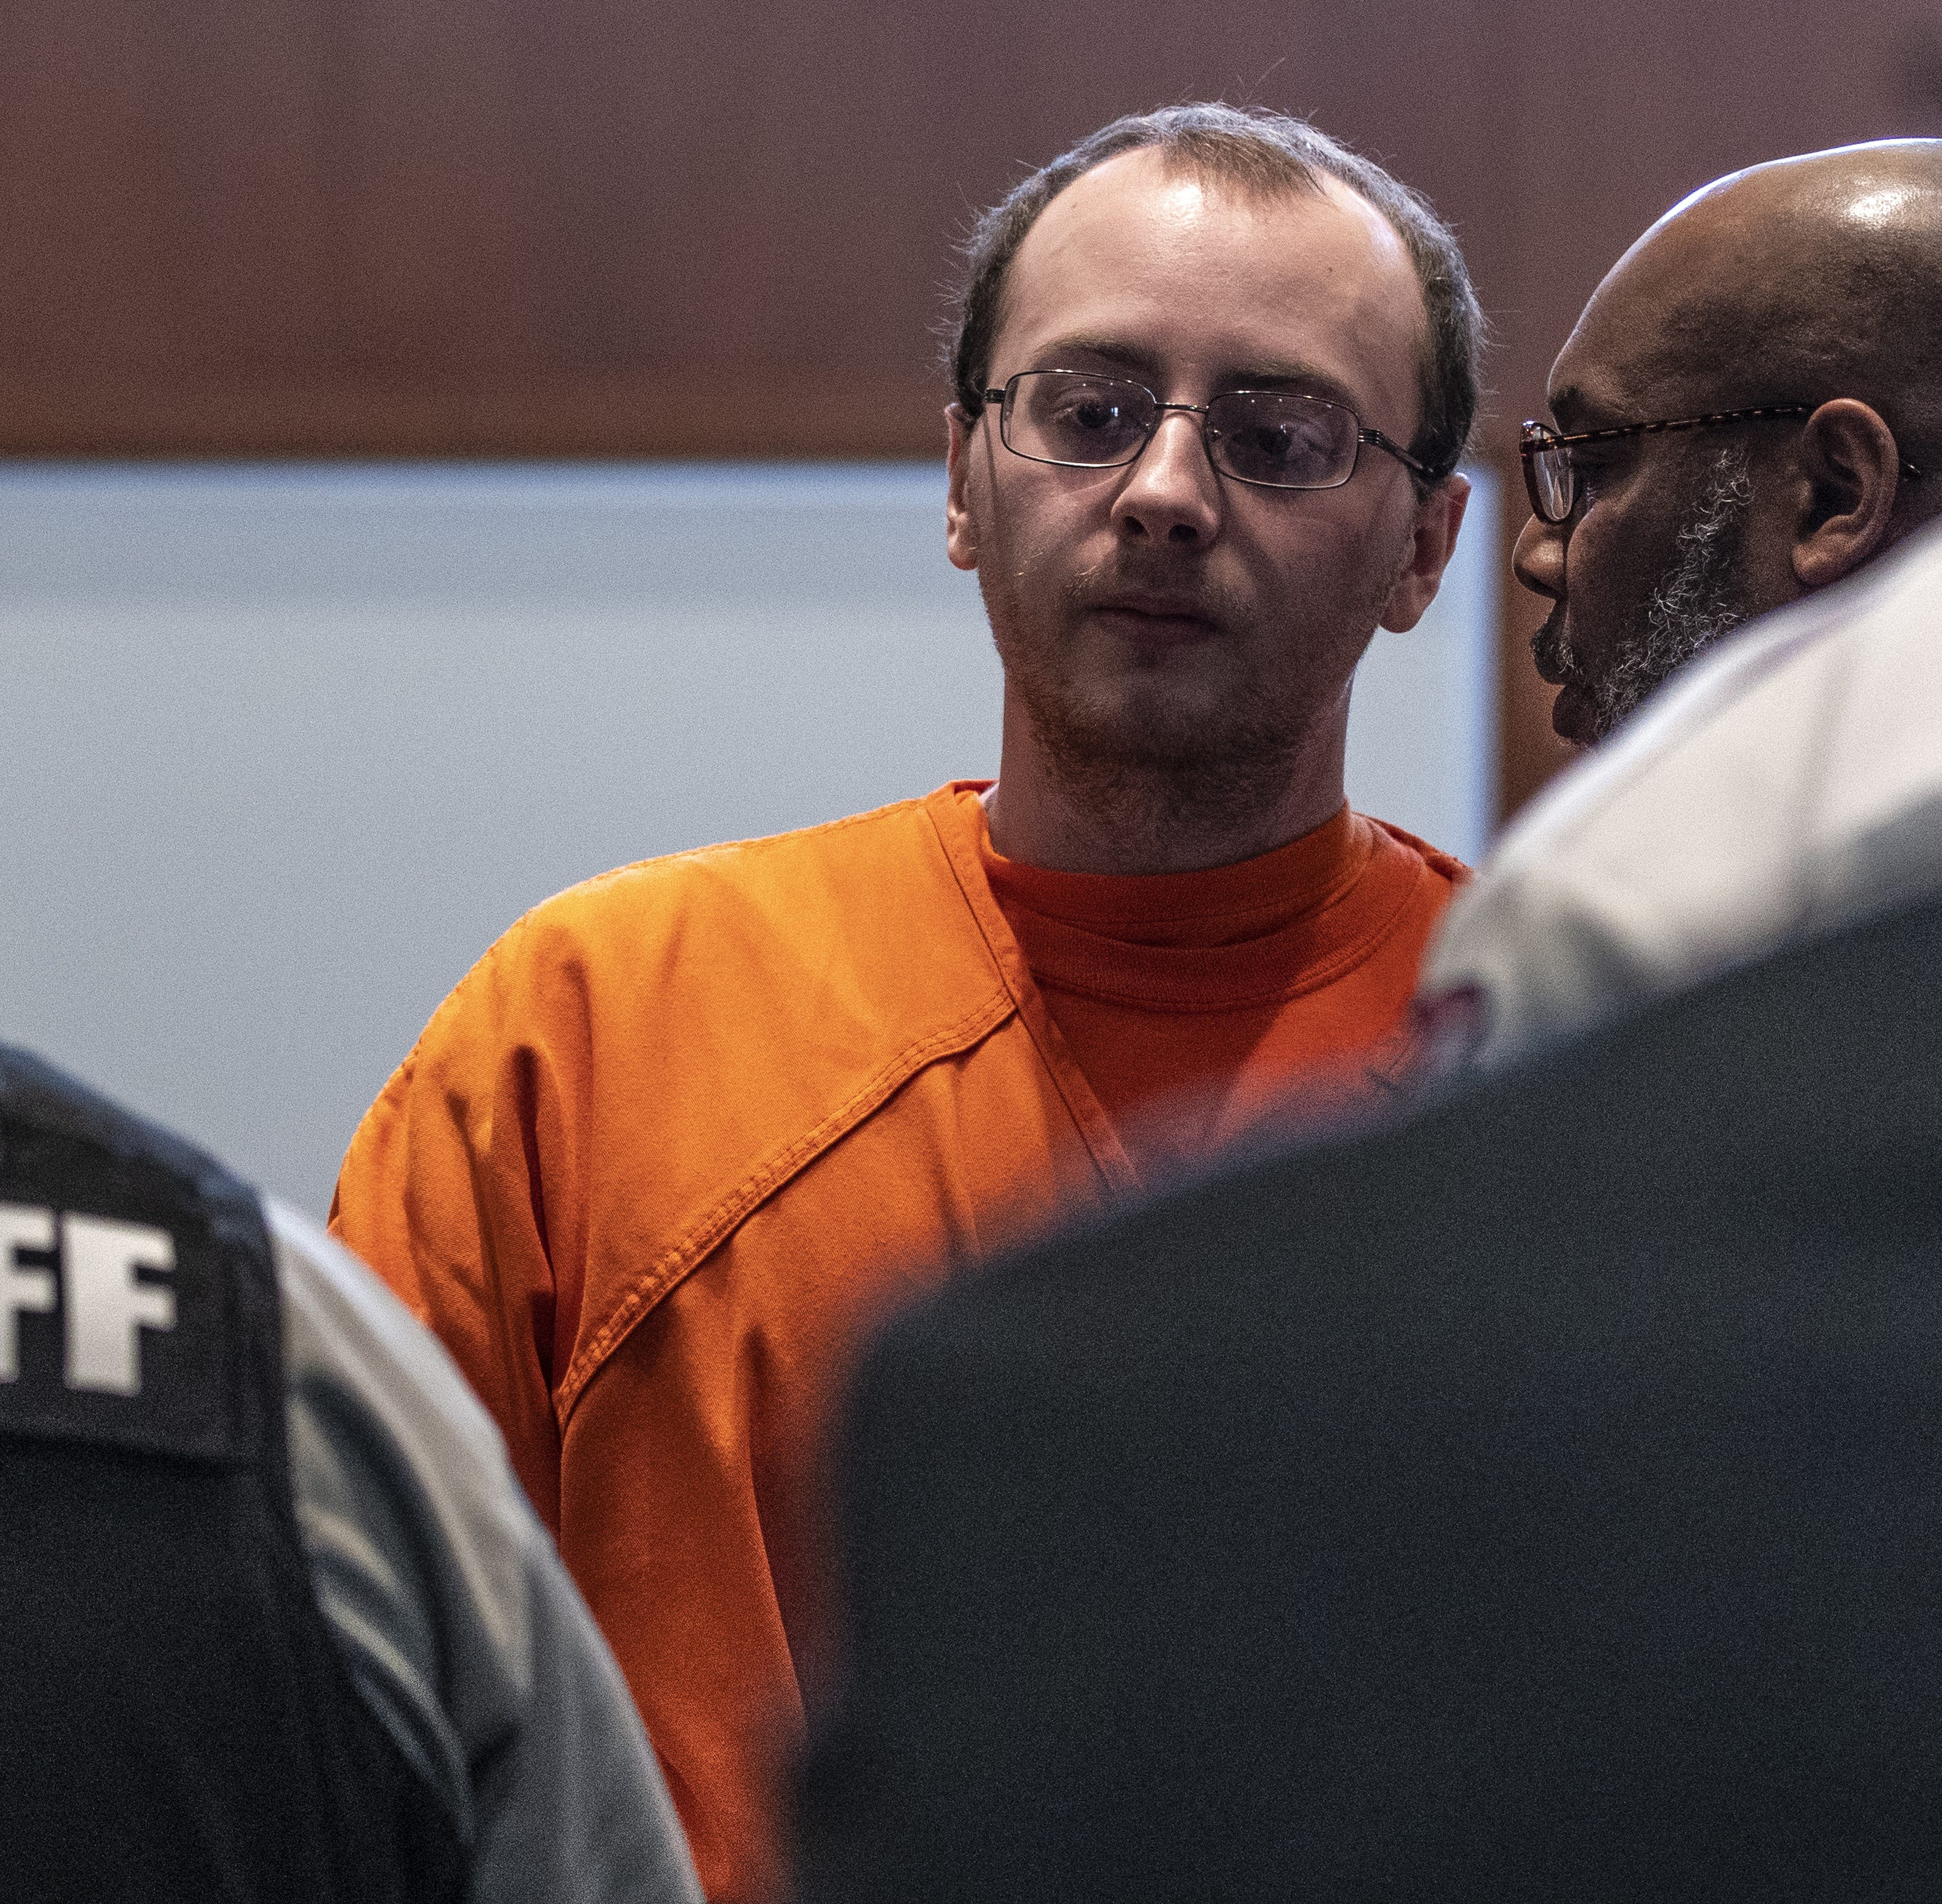 Watch: Jake Patterson sentencing in Jayme Closs case